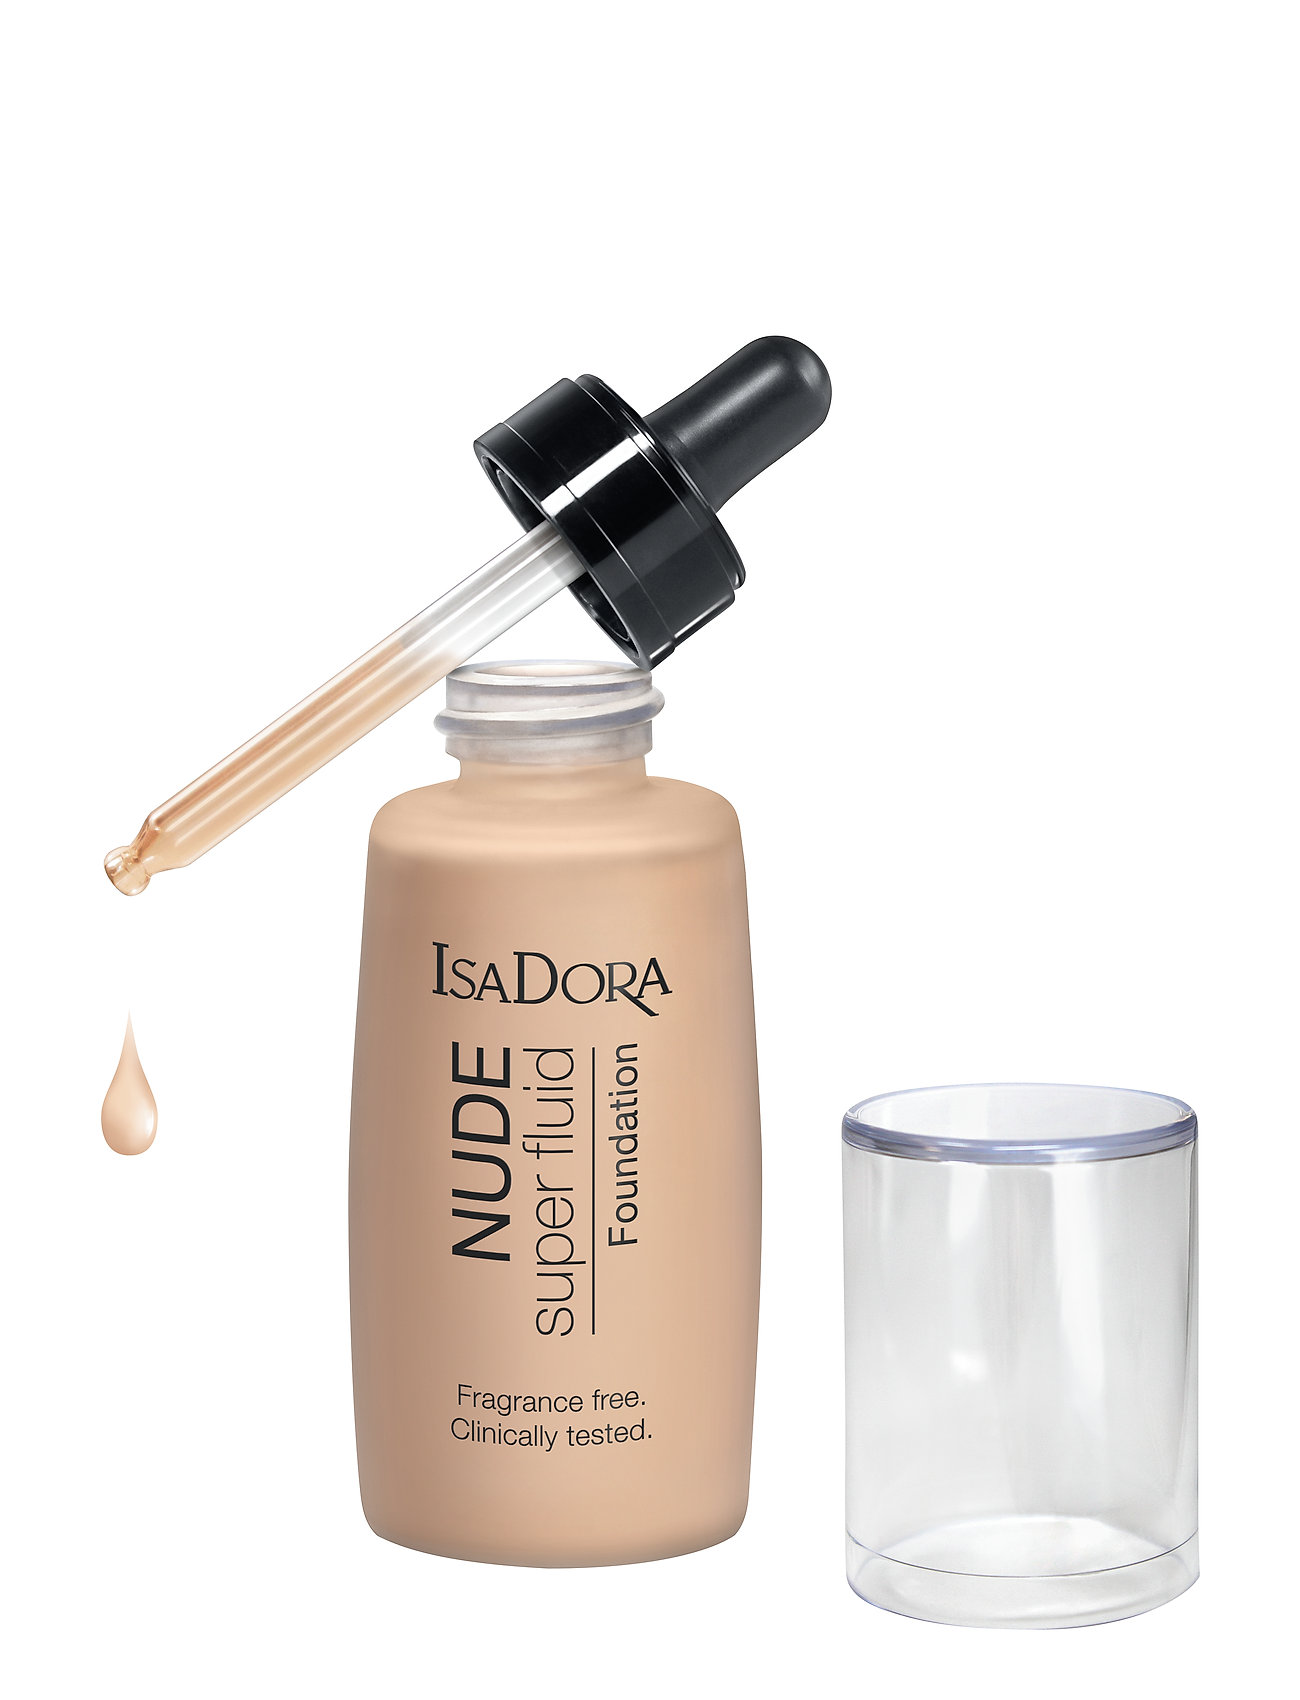 Image of Nude Fluid Foundation 10 Nude Porcelain Foundation Makeup Isadora (3422672091)